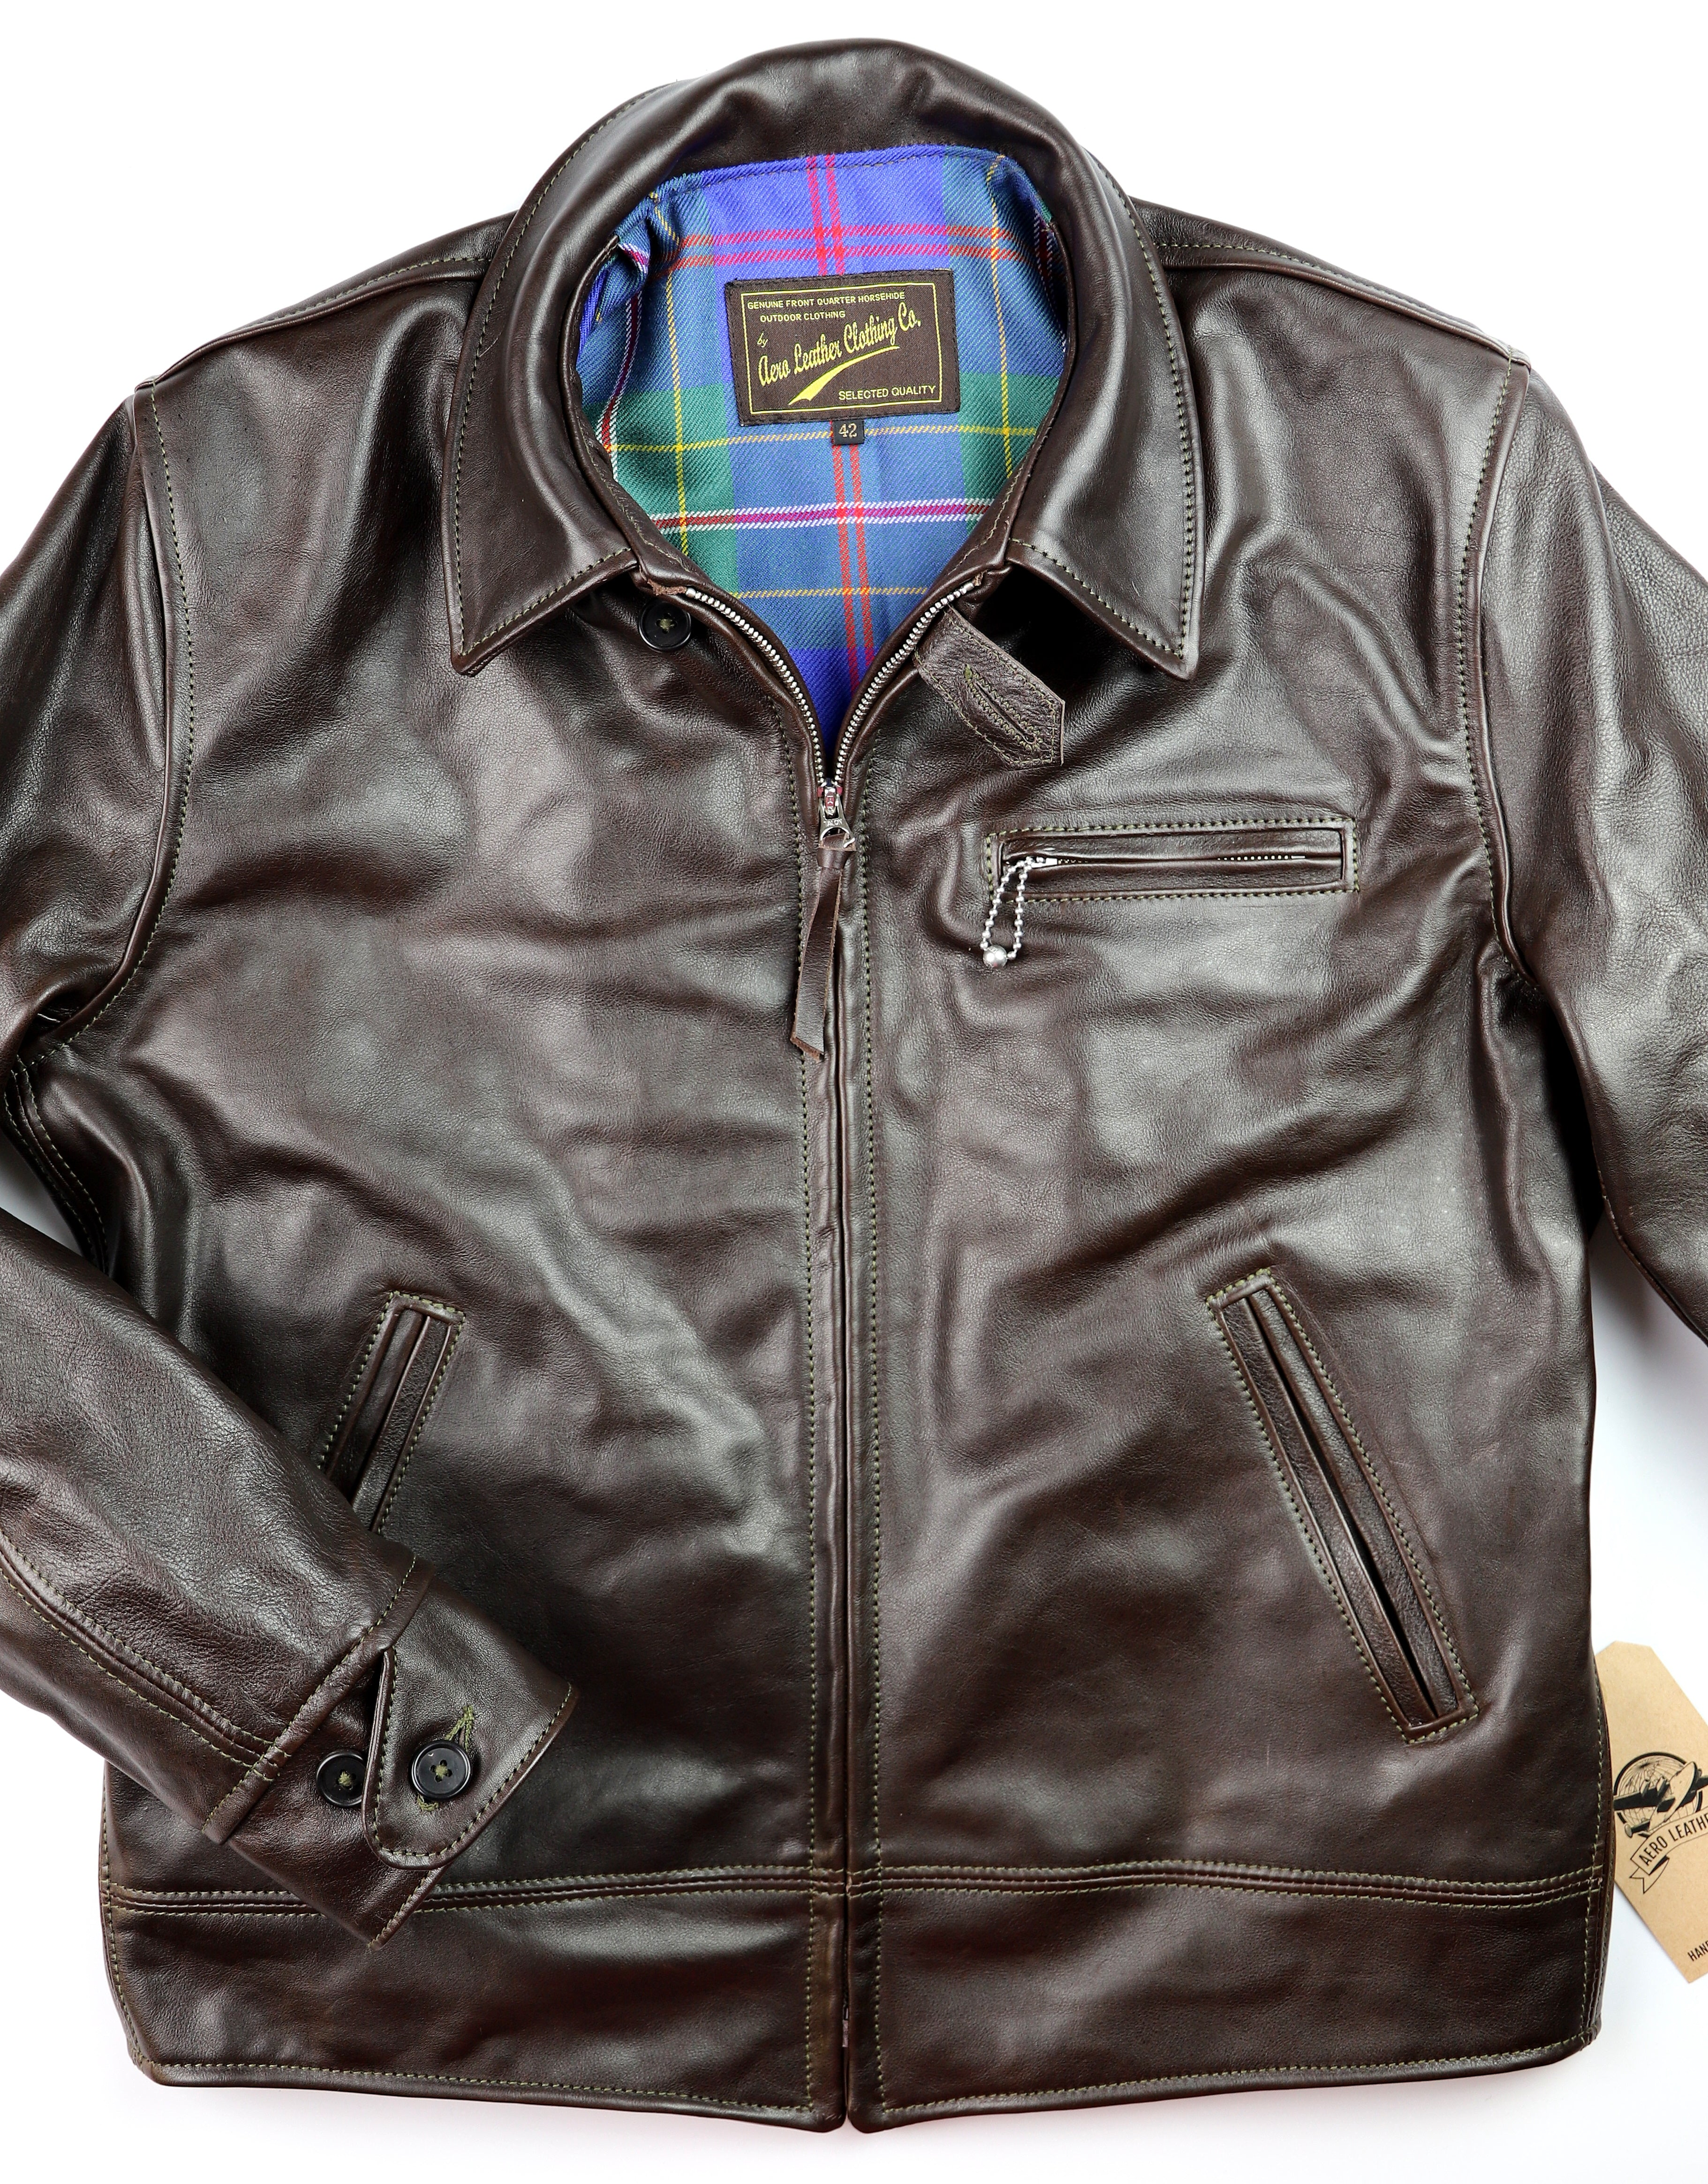 Leather jacket with zipper closure, shirt collar and button cuffs. Throat latch and three-pocket front.